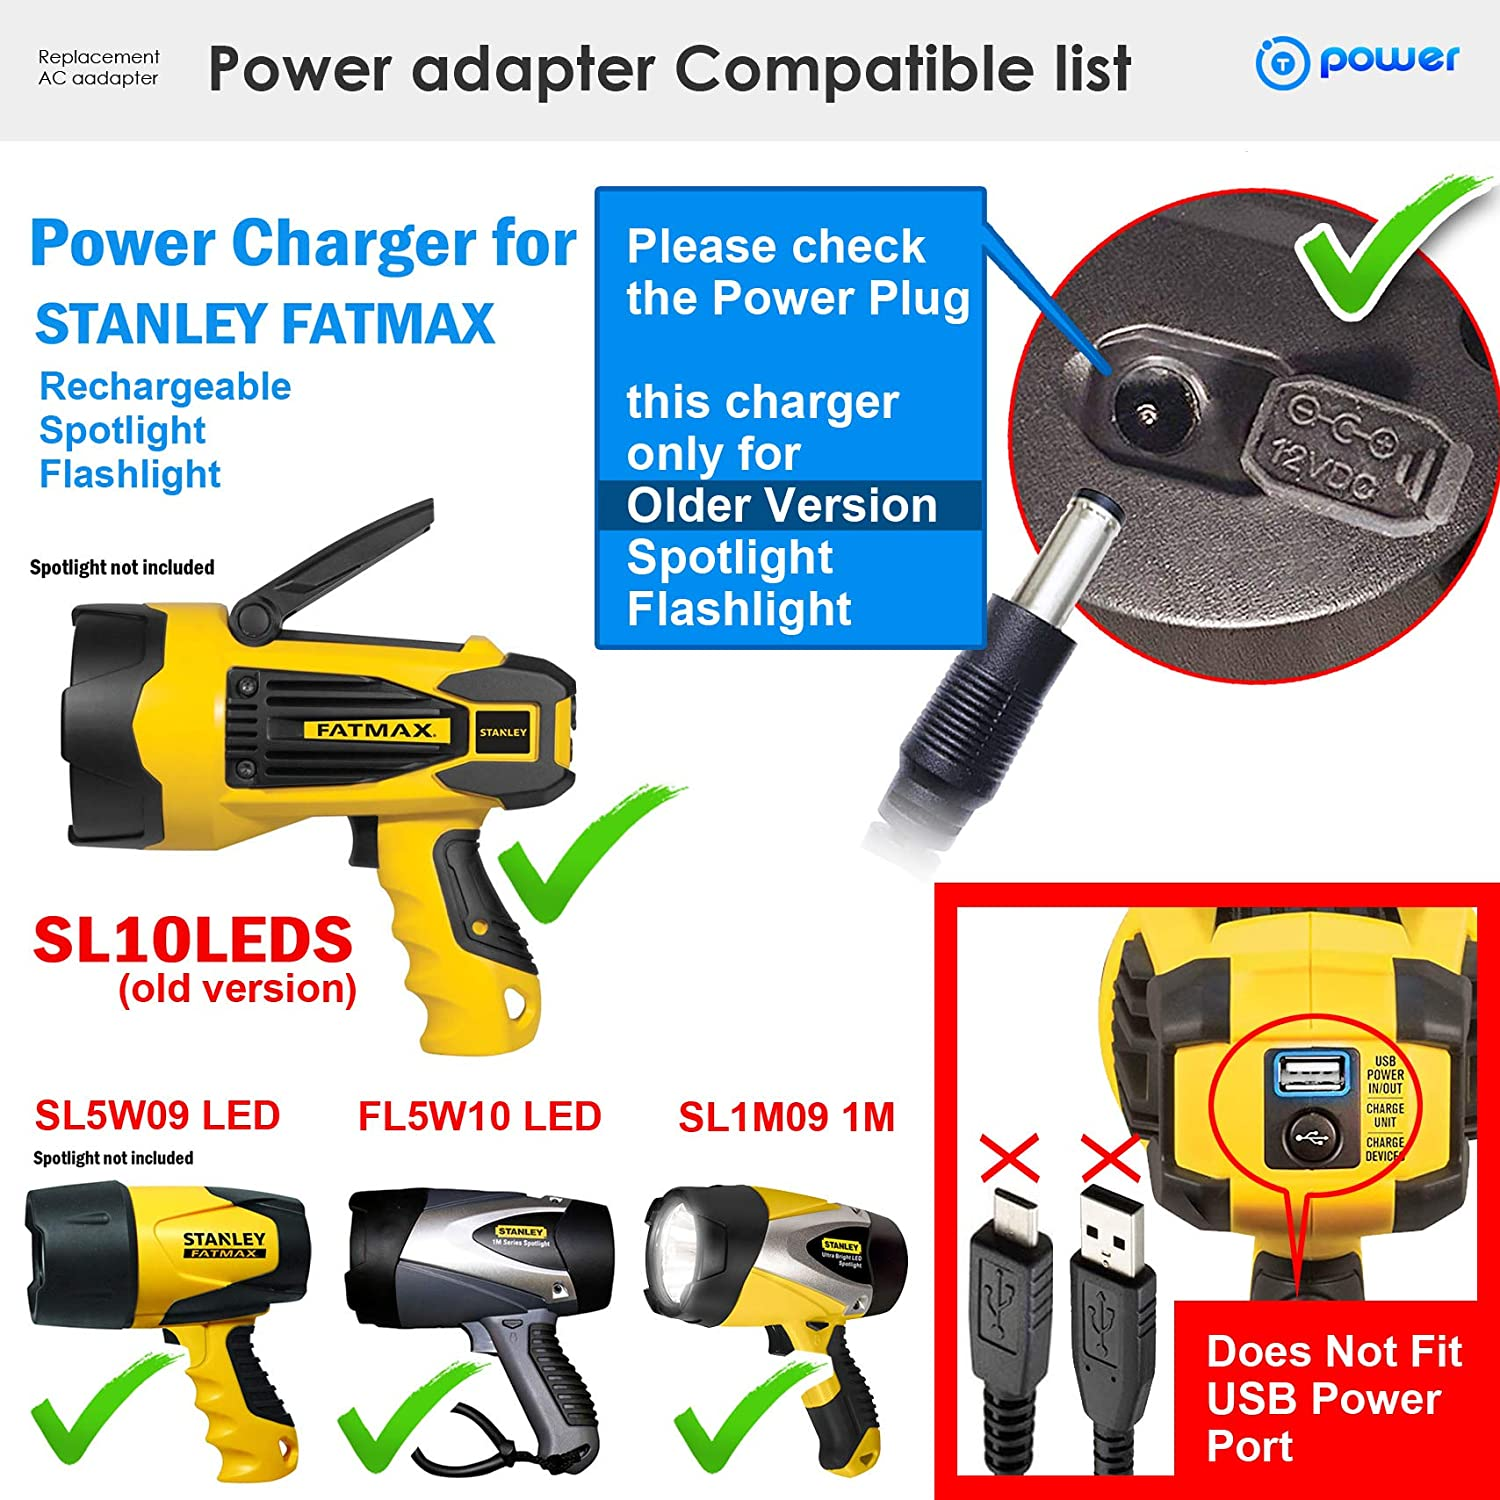 T-Power Ac Adapter Compatible with 12v Stanley FatMax LED SL1M09 SL5W09 HID0109 FL5W10 FL3WBD Waterproof LED Rechargeable Spotlight p,n: HT73005A Charger Power Supply